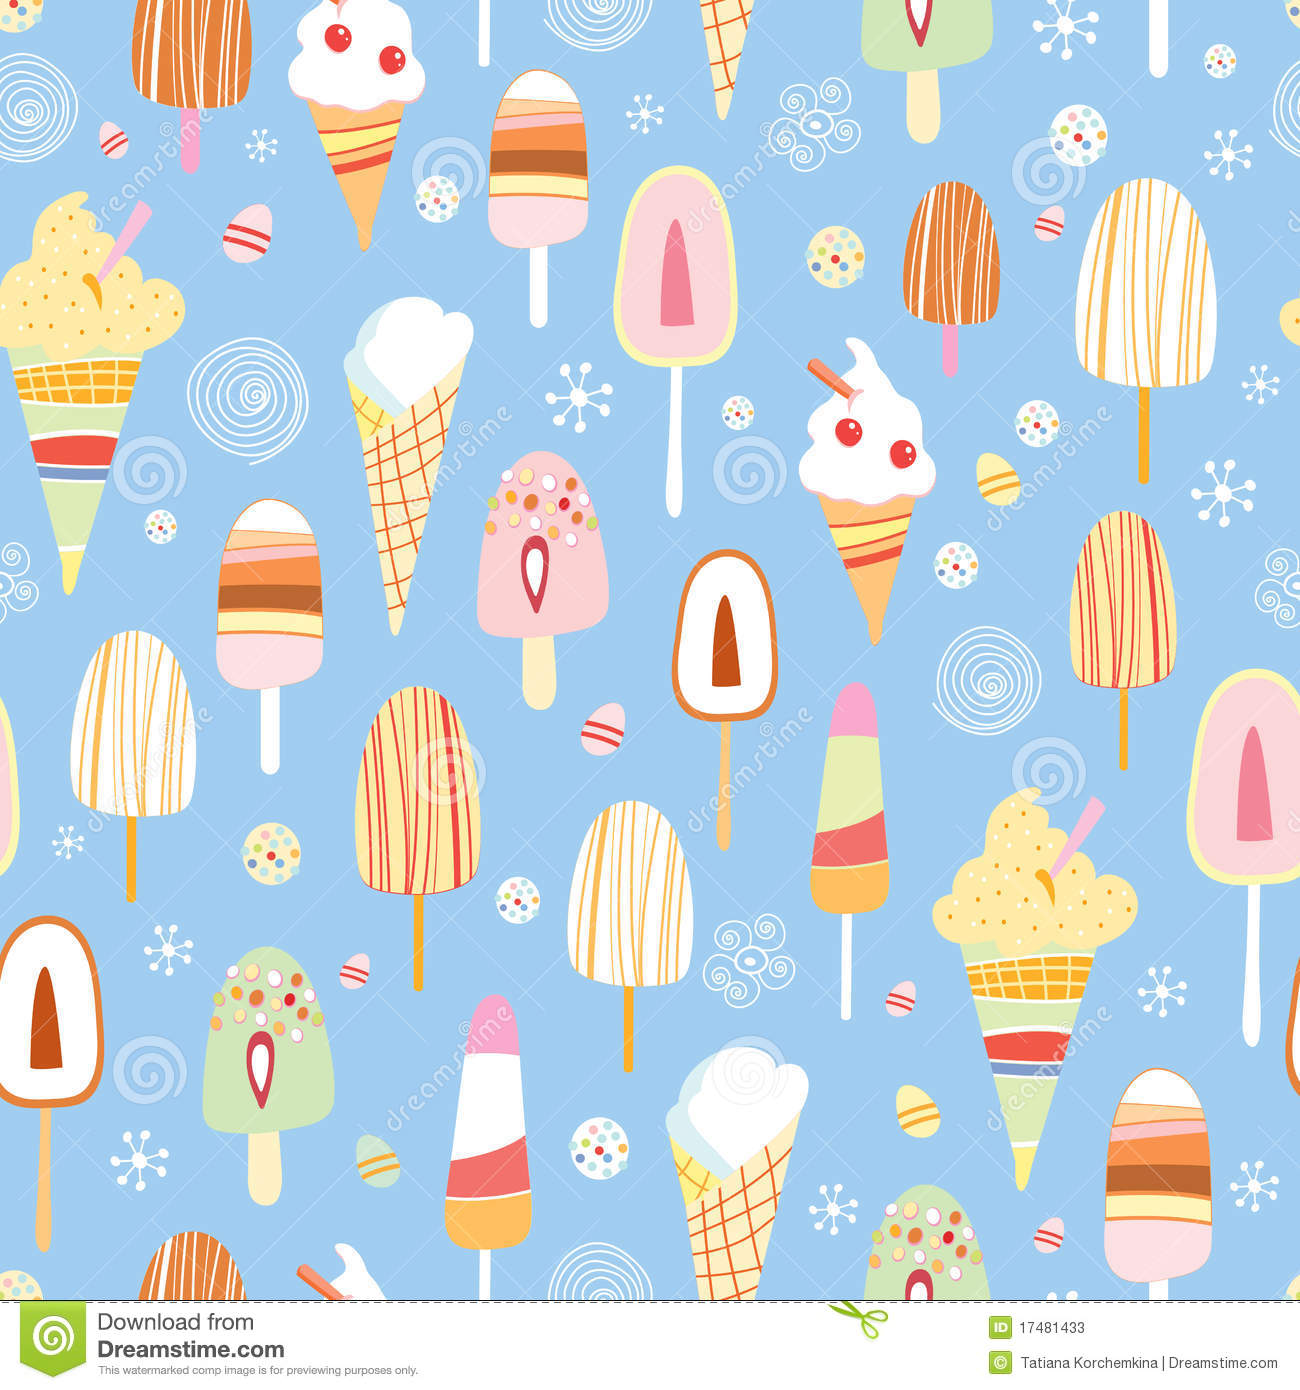 Seamless Ice Cream Wallpaper Royalty Free Stock Images: The Texture Of Ice Cream Stock Photos